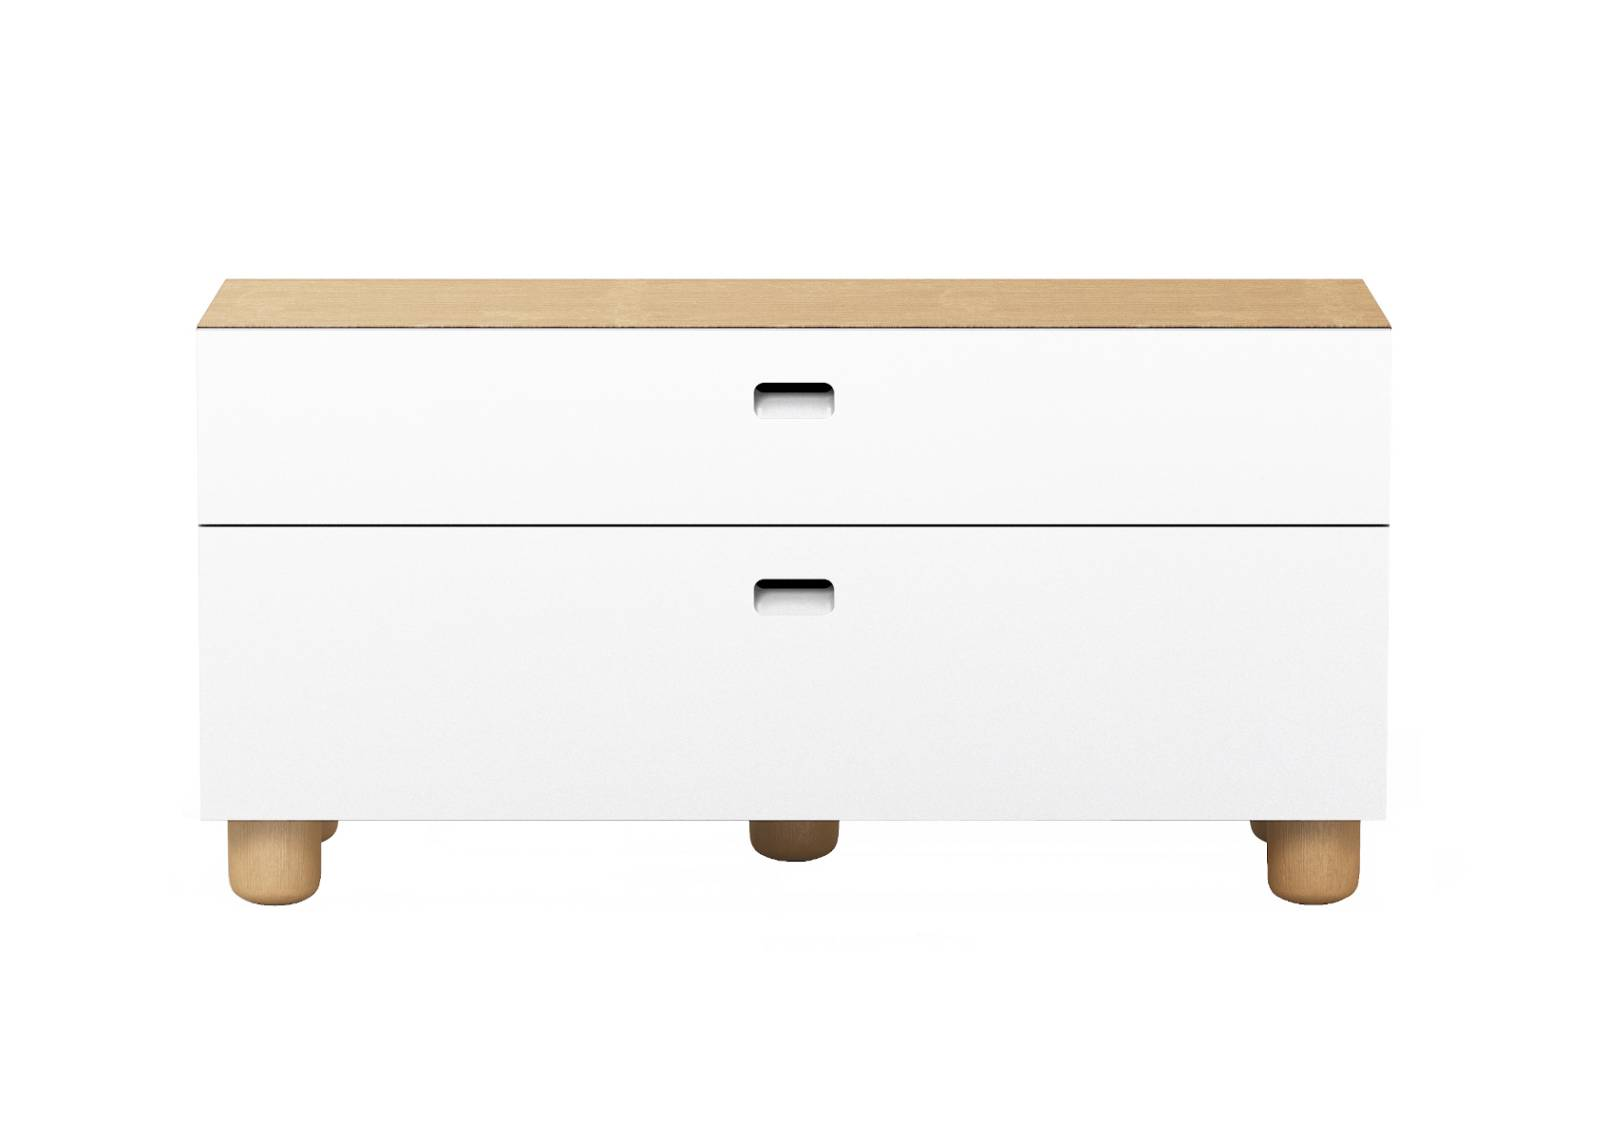 Quodes Satellite Sideboard Design by Edward Barber and Jay Osgerby